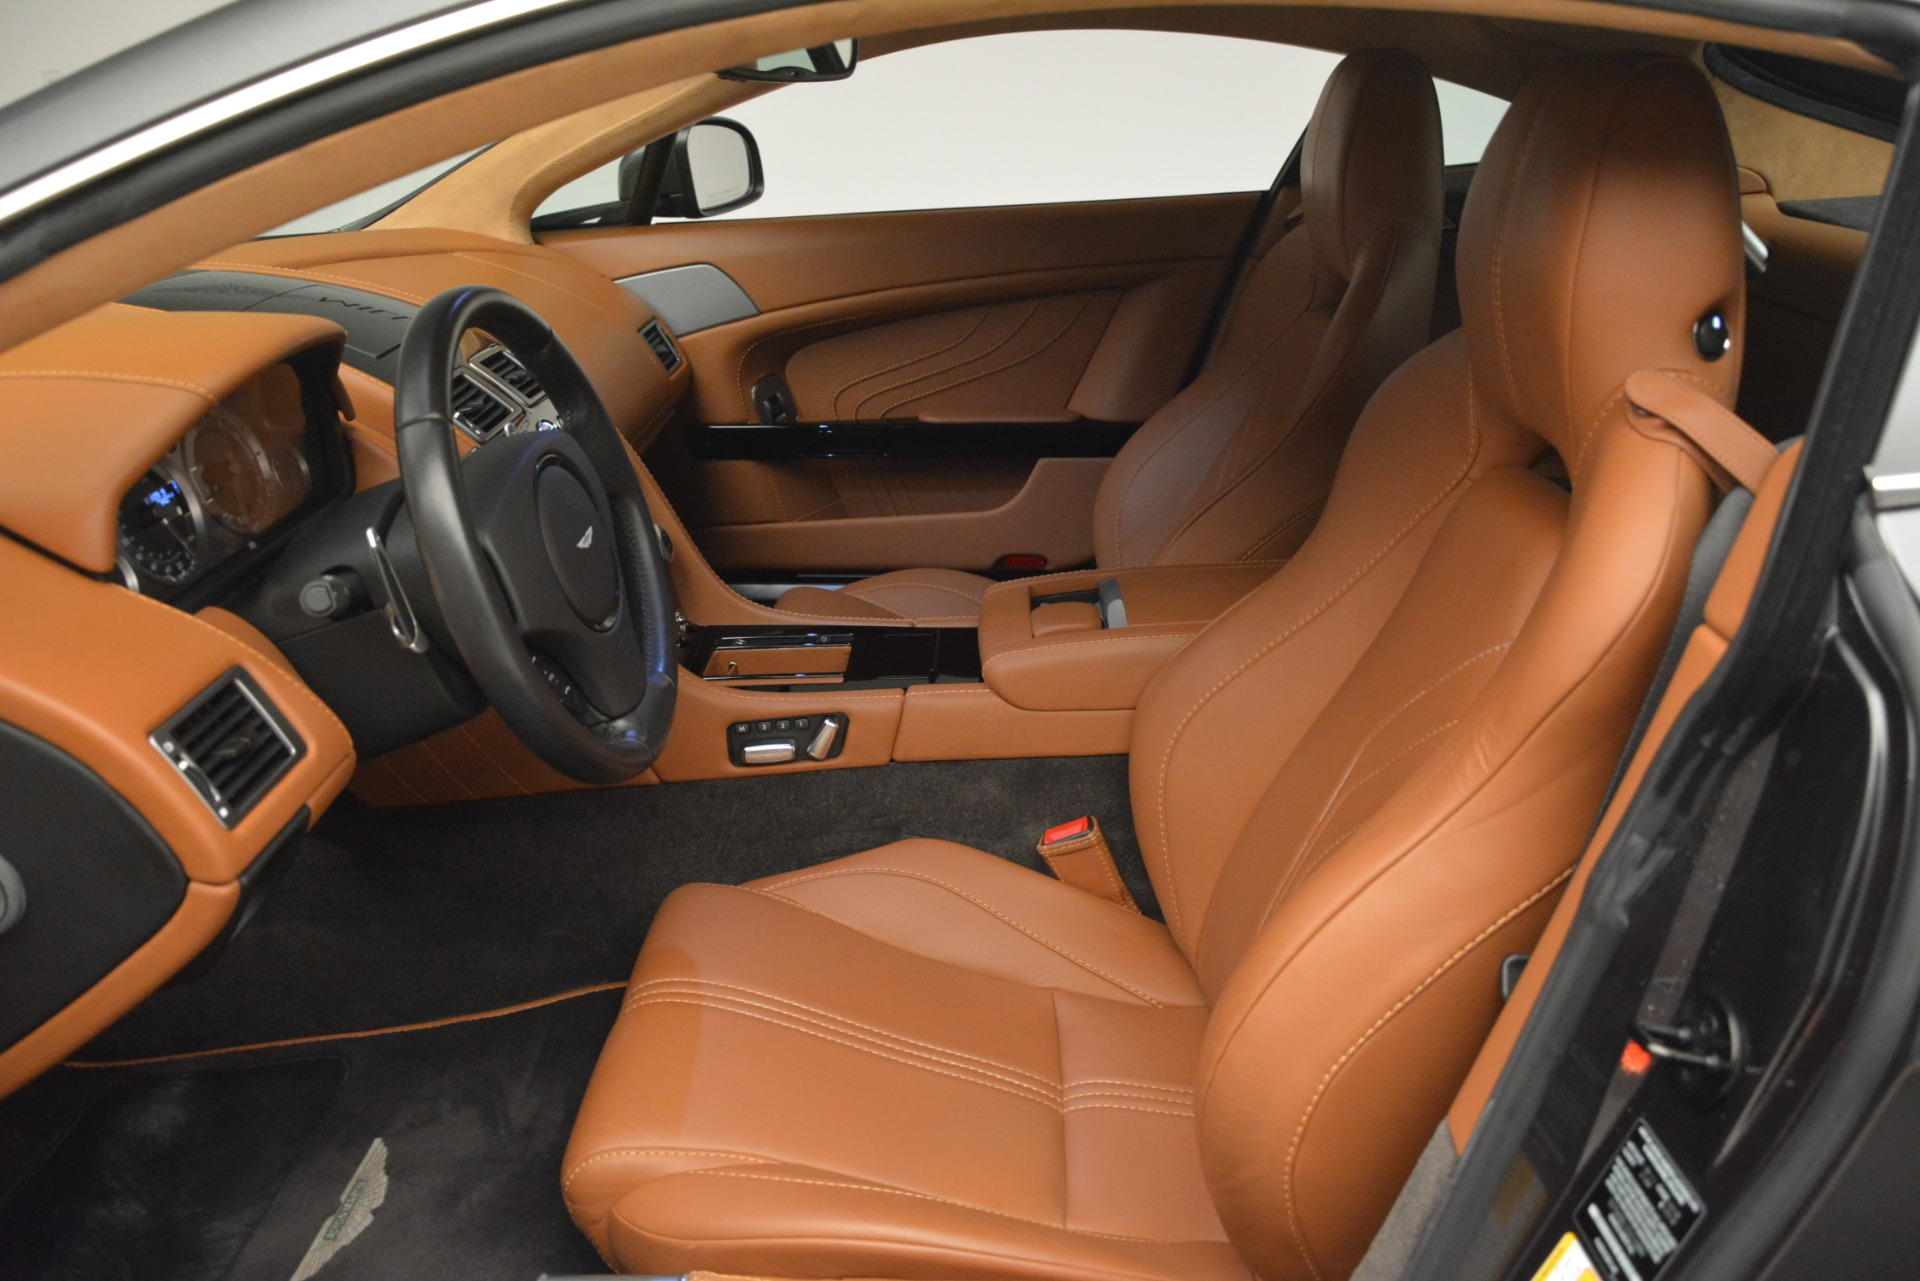 Used 2012 Aston Martin V8 Vantage S Coupe For Sale In Greenwich, CT 2951_p13